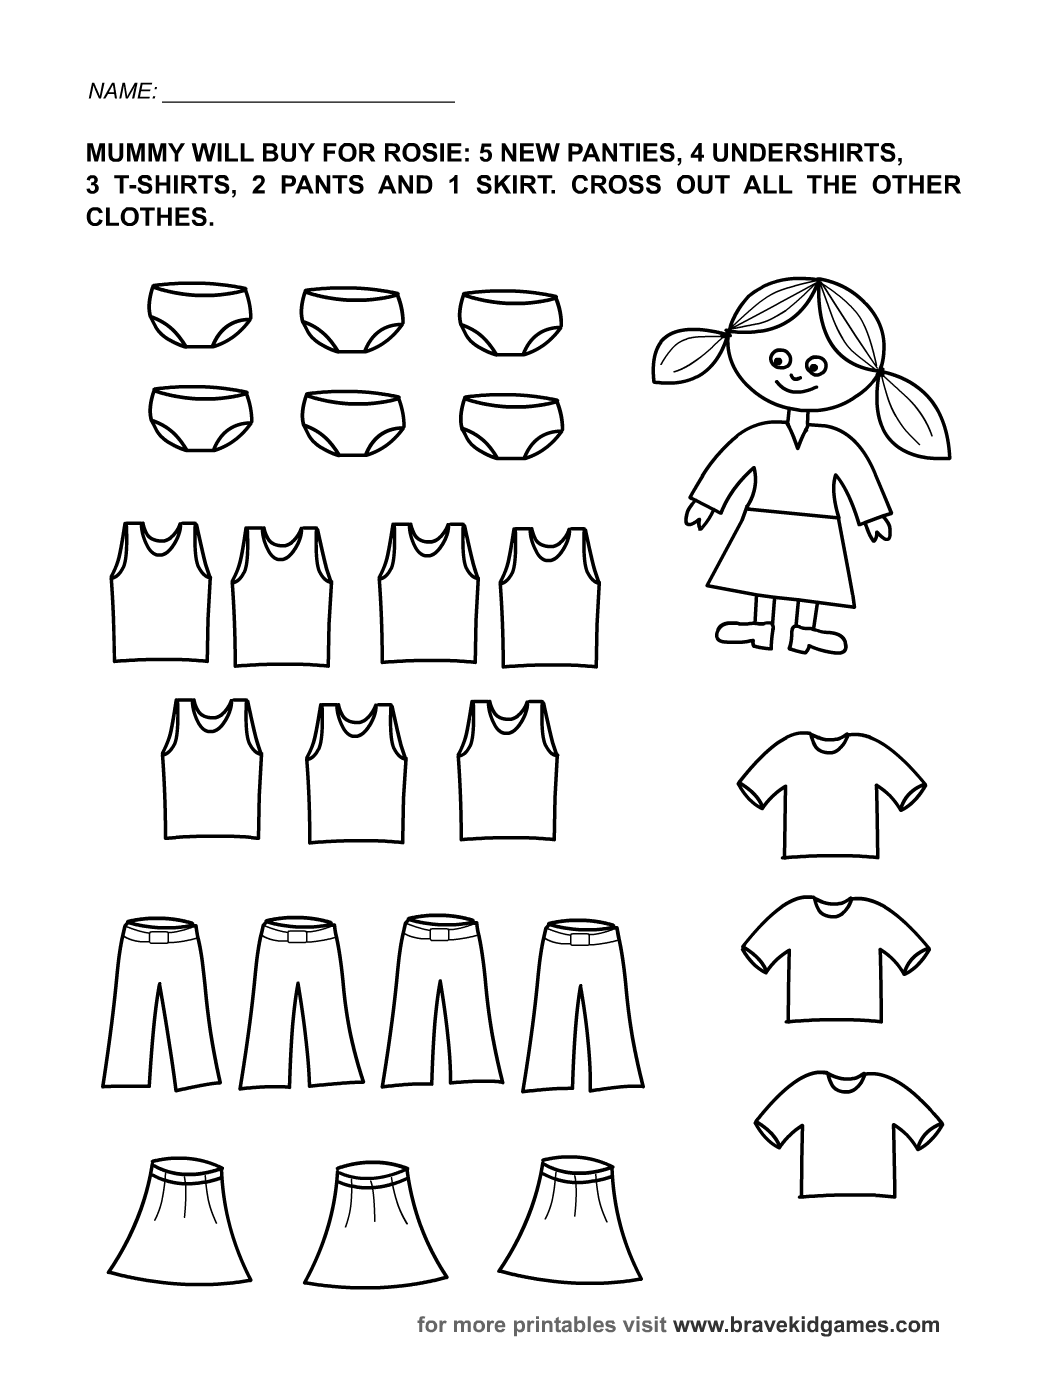 Worksheet Worksheet Kids worksheets for children davezan